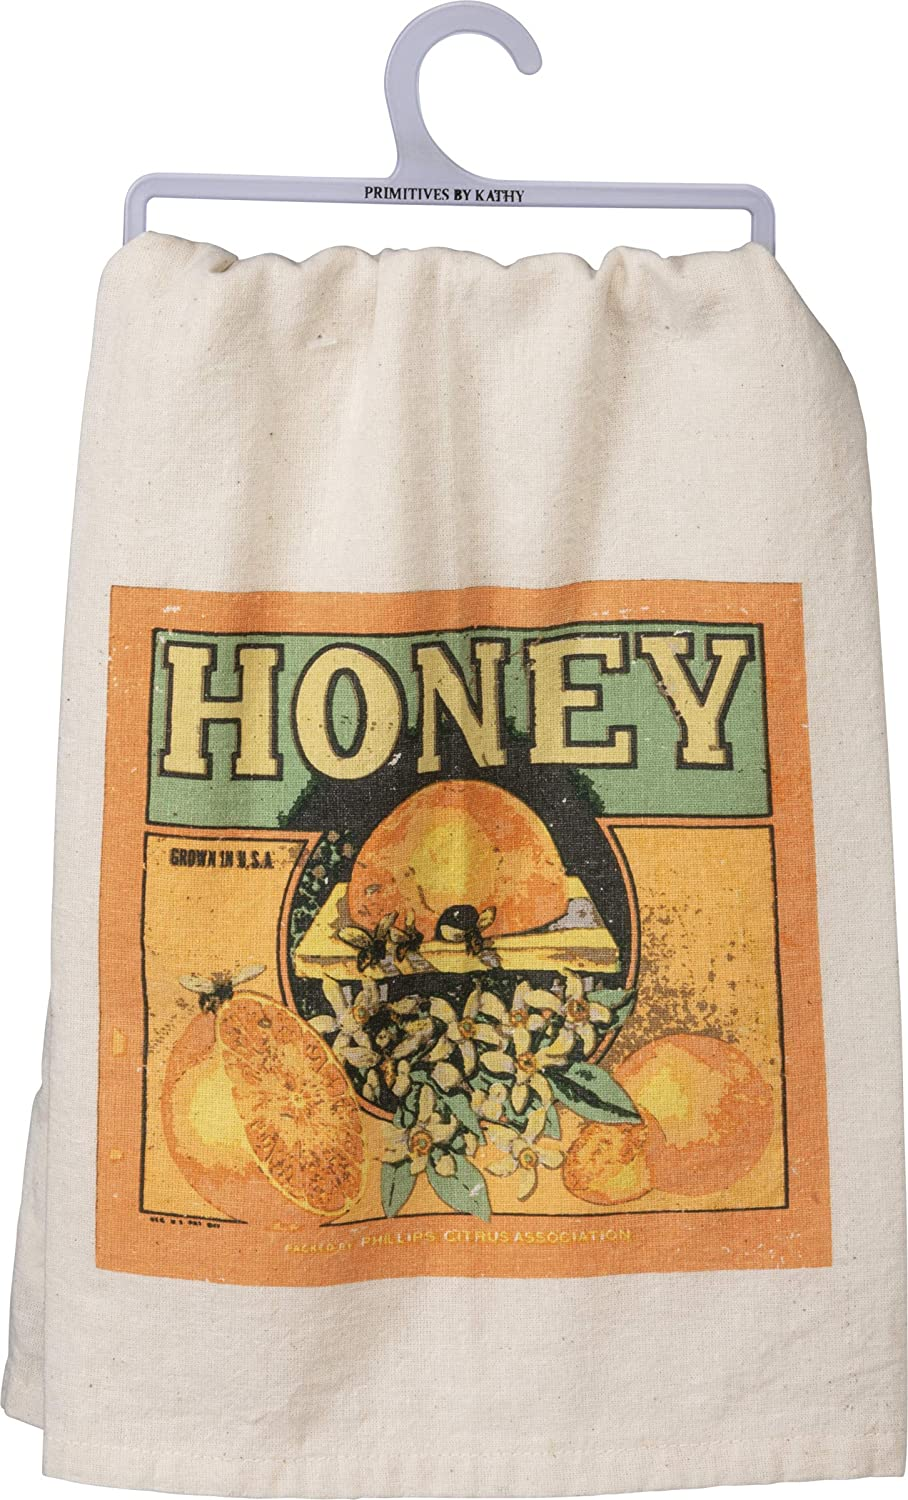 Bee Humble 28 x 28-Inches Primitives by Kathy Hand Lettered Dish Towel